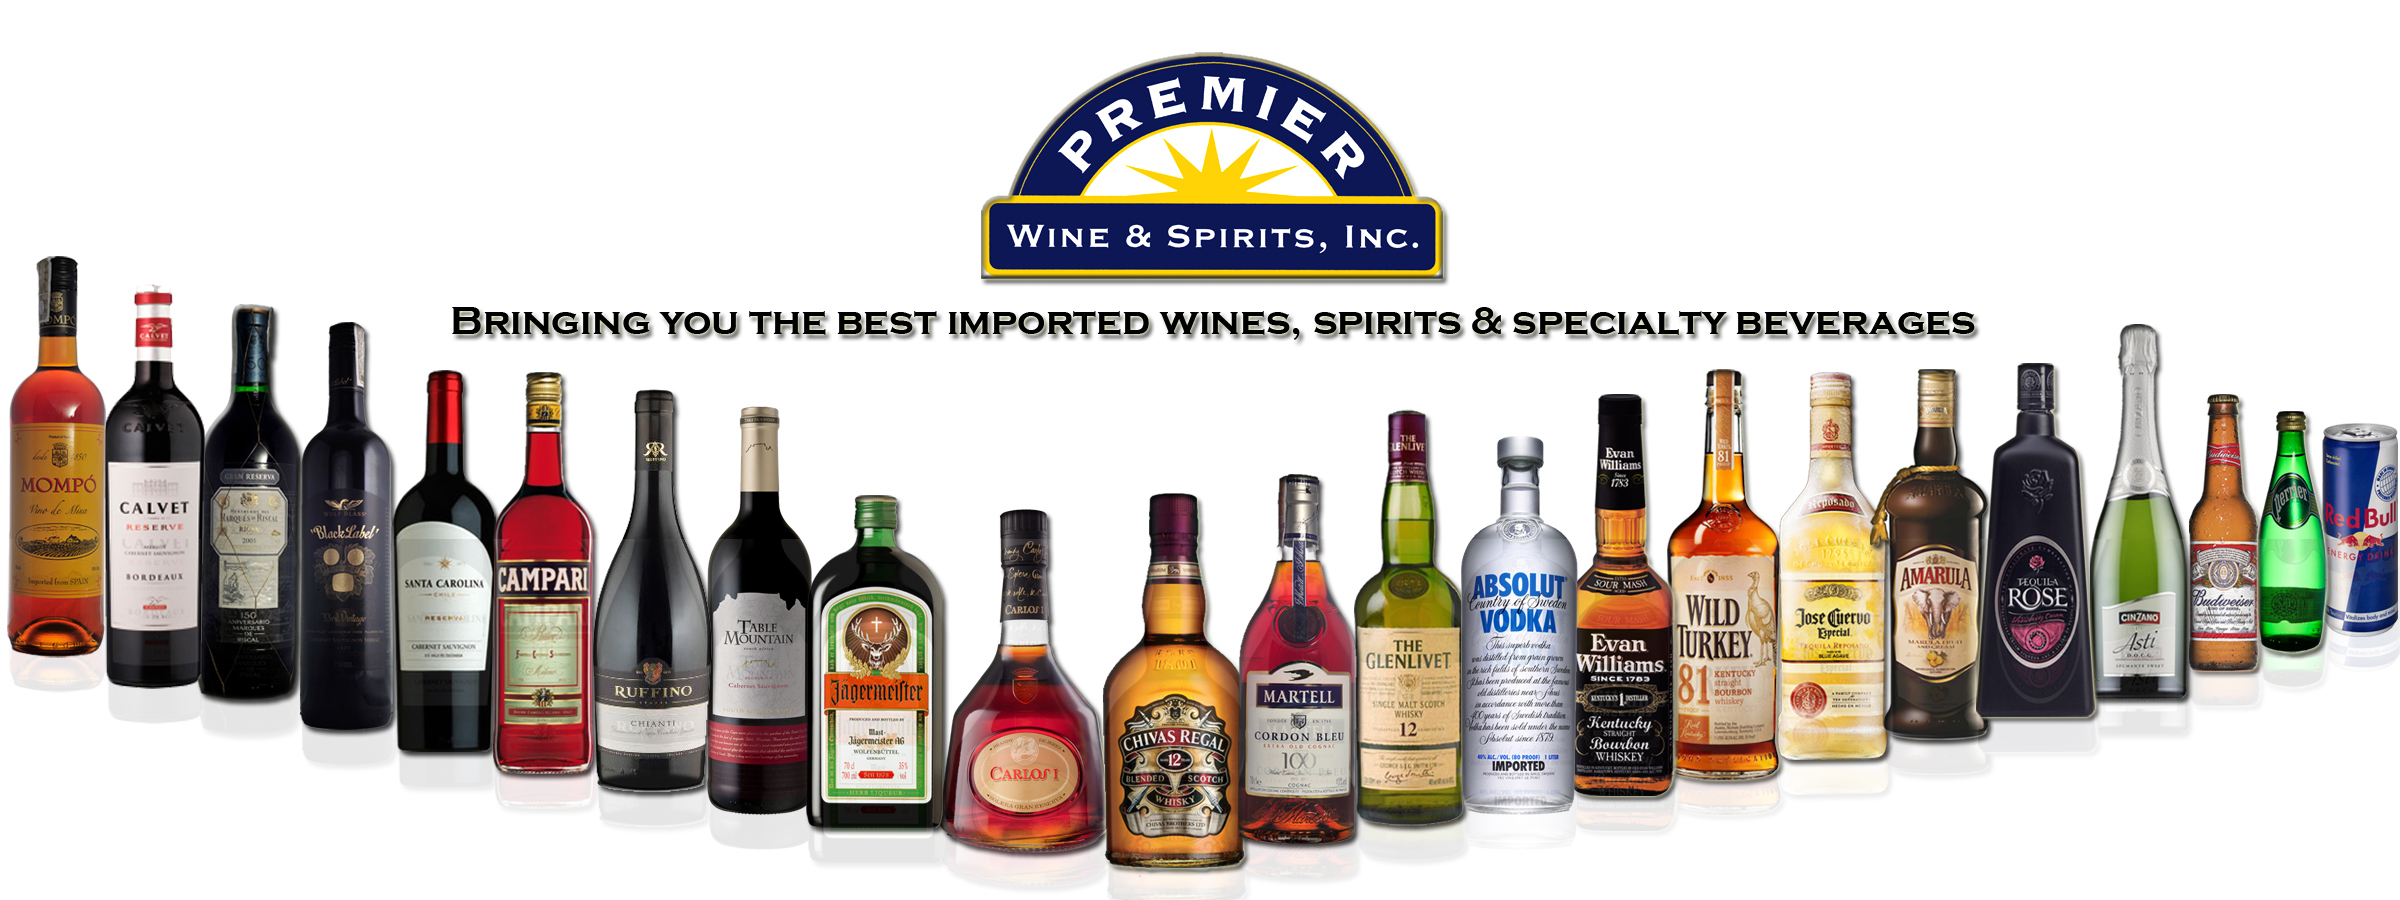 Premier Wine & Spirits Inc.